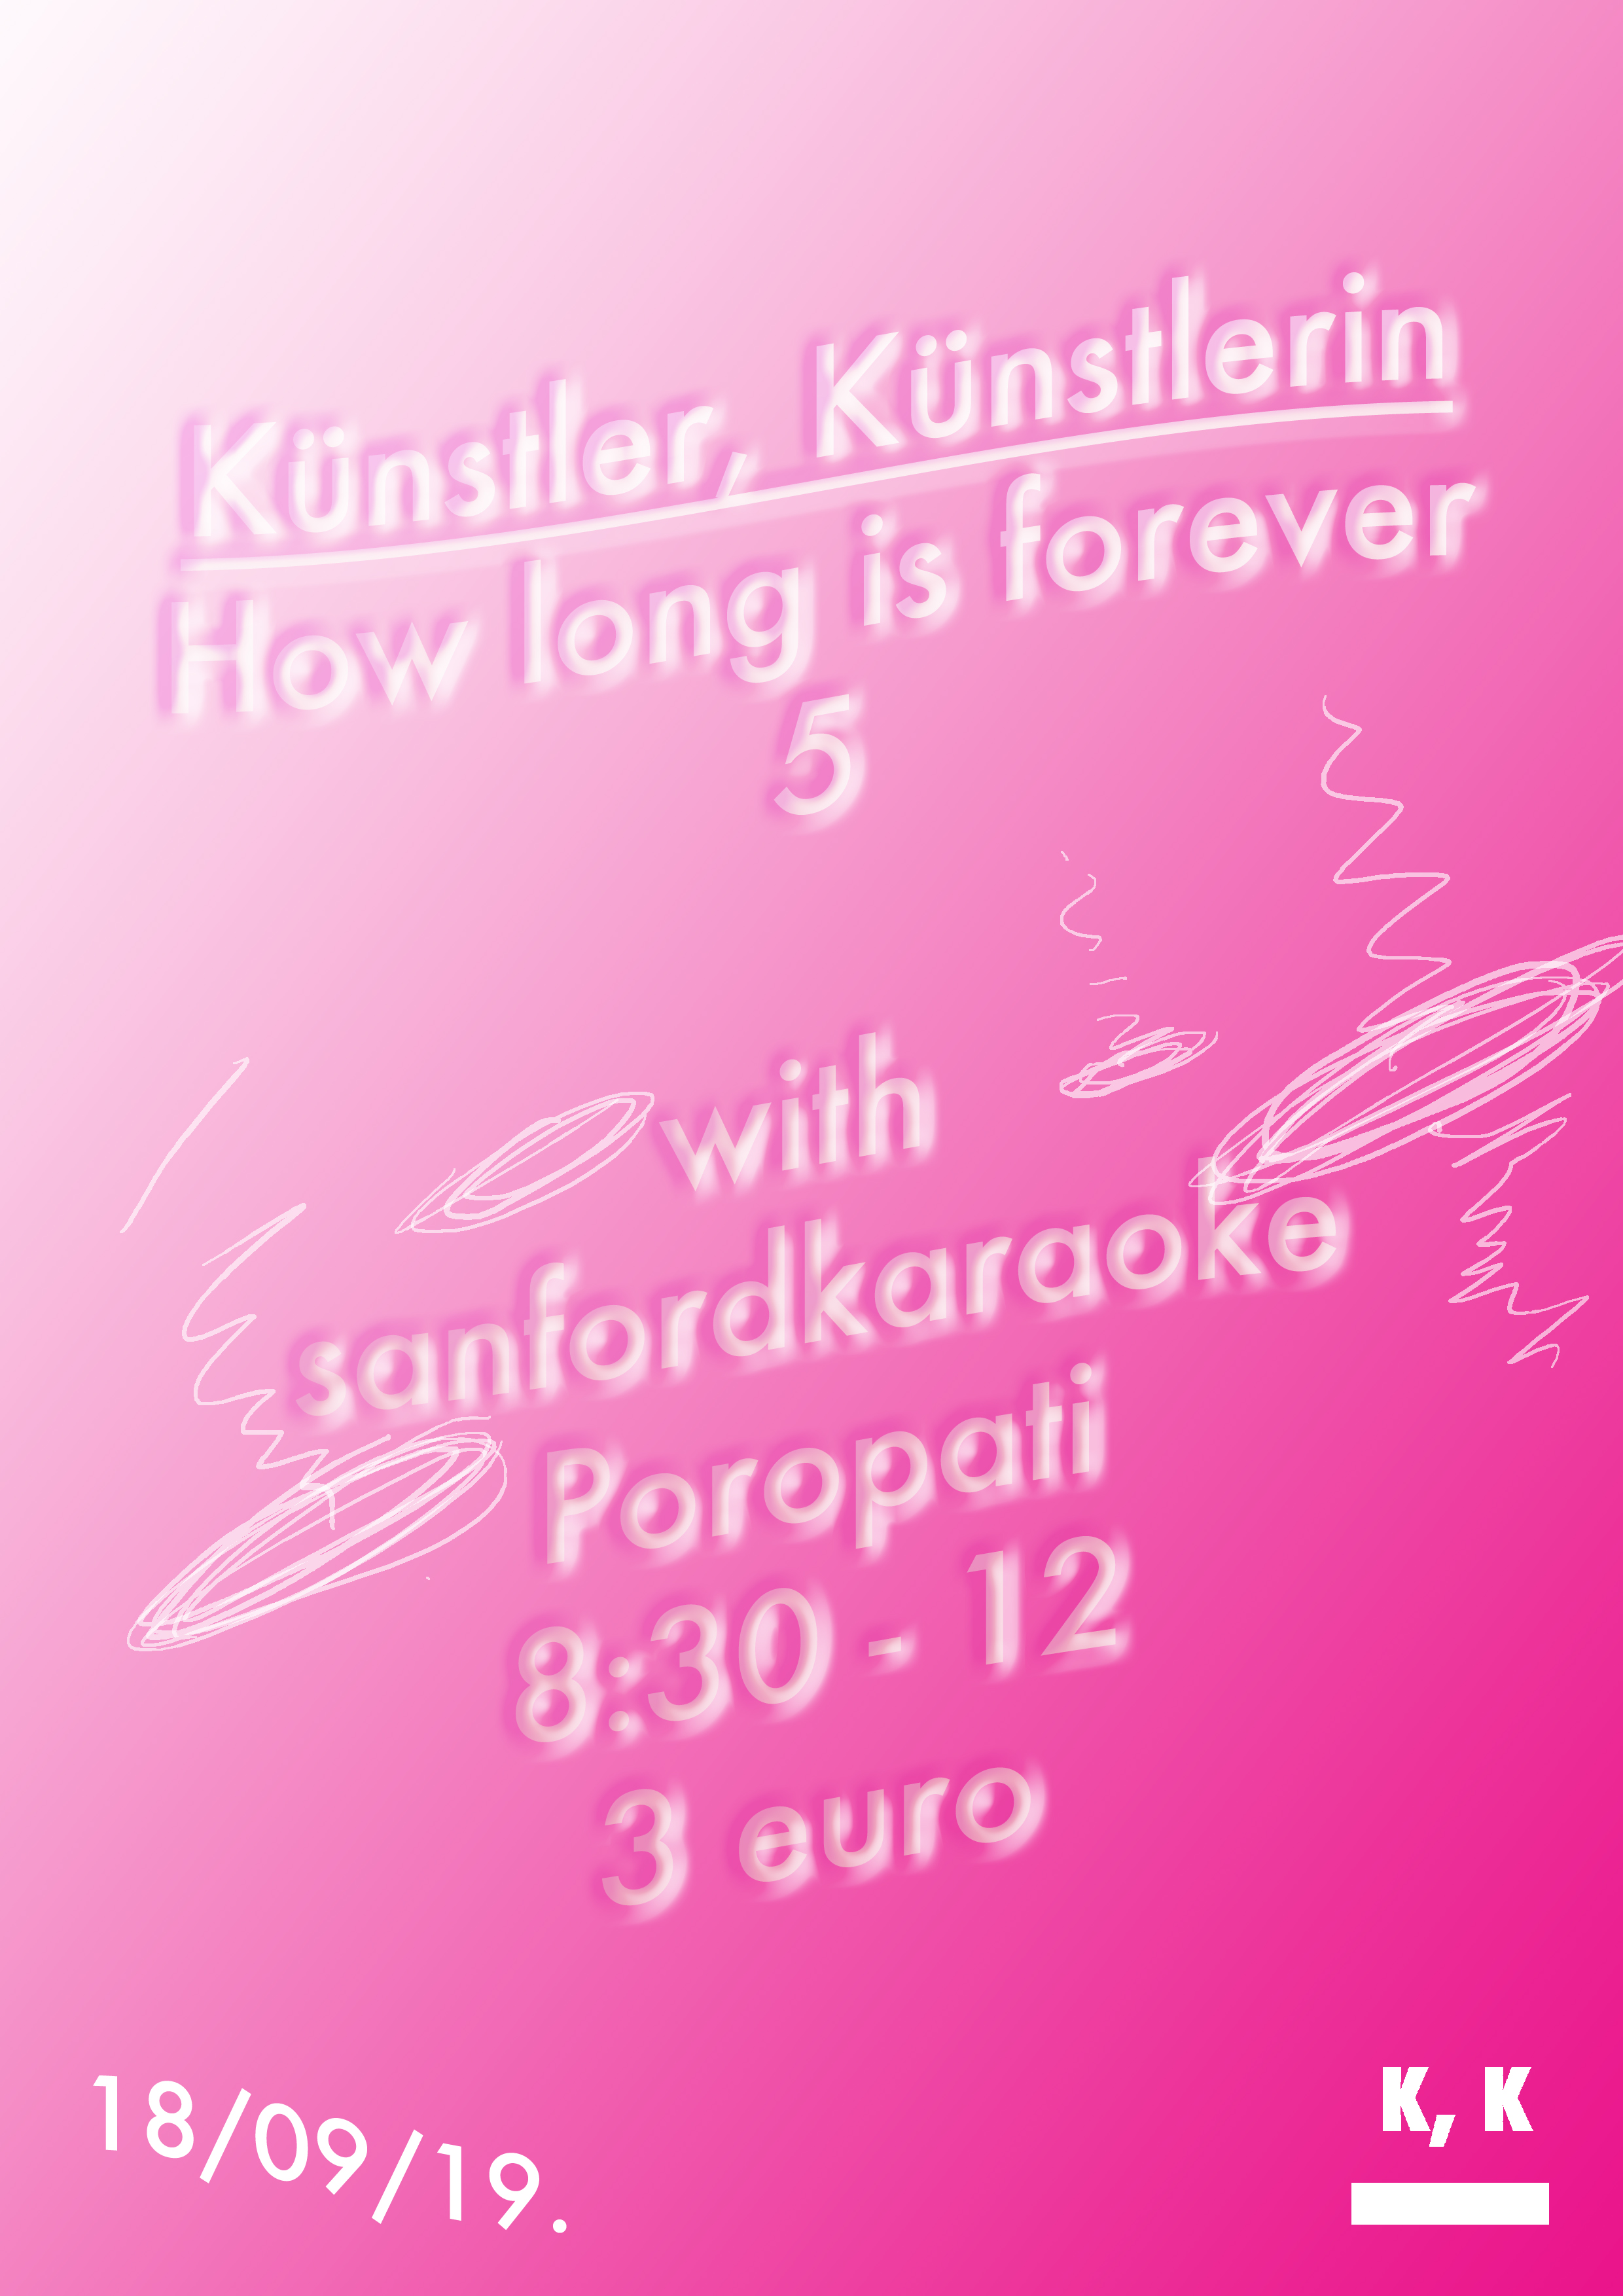 Kunstler, Kunstlerin, How long is forever 5 with sanfordkaraoke edit.jpg